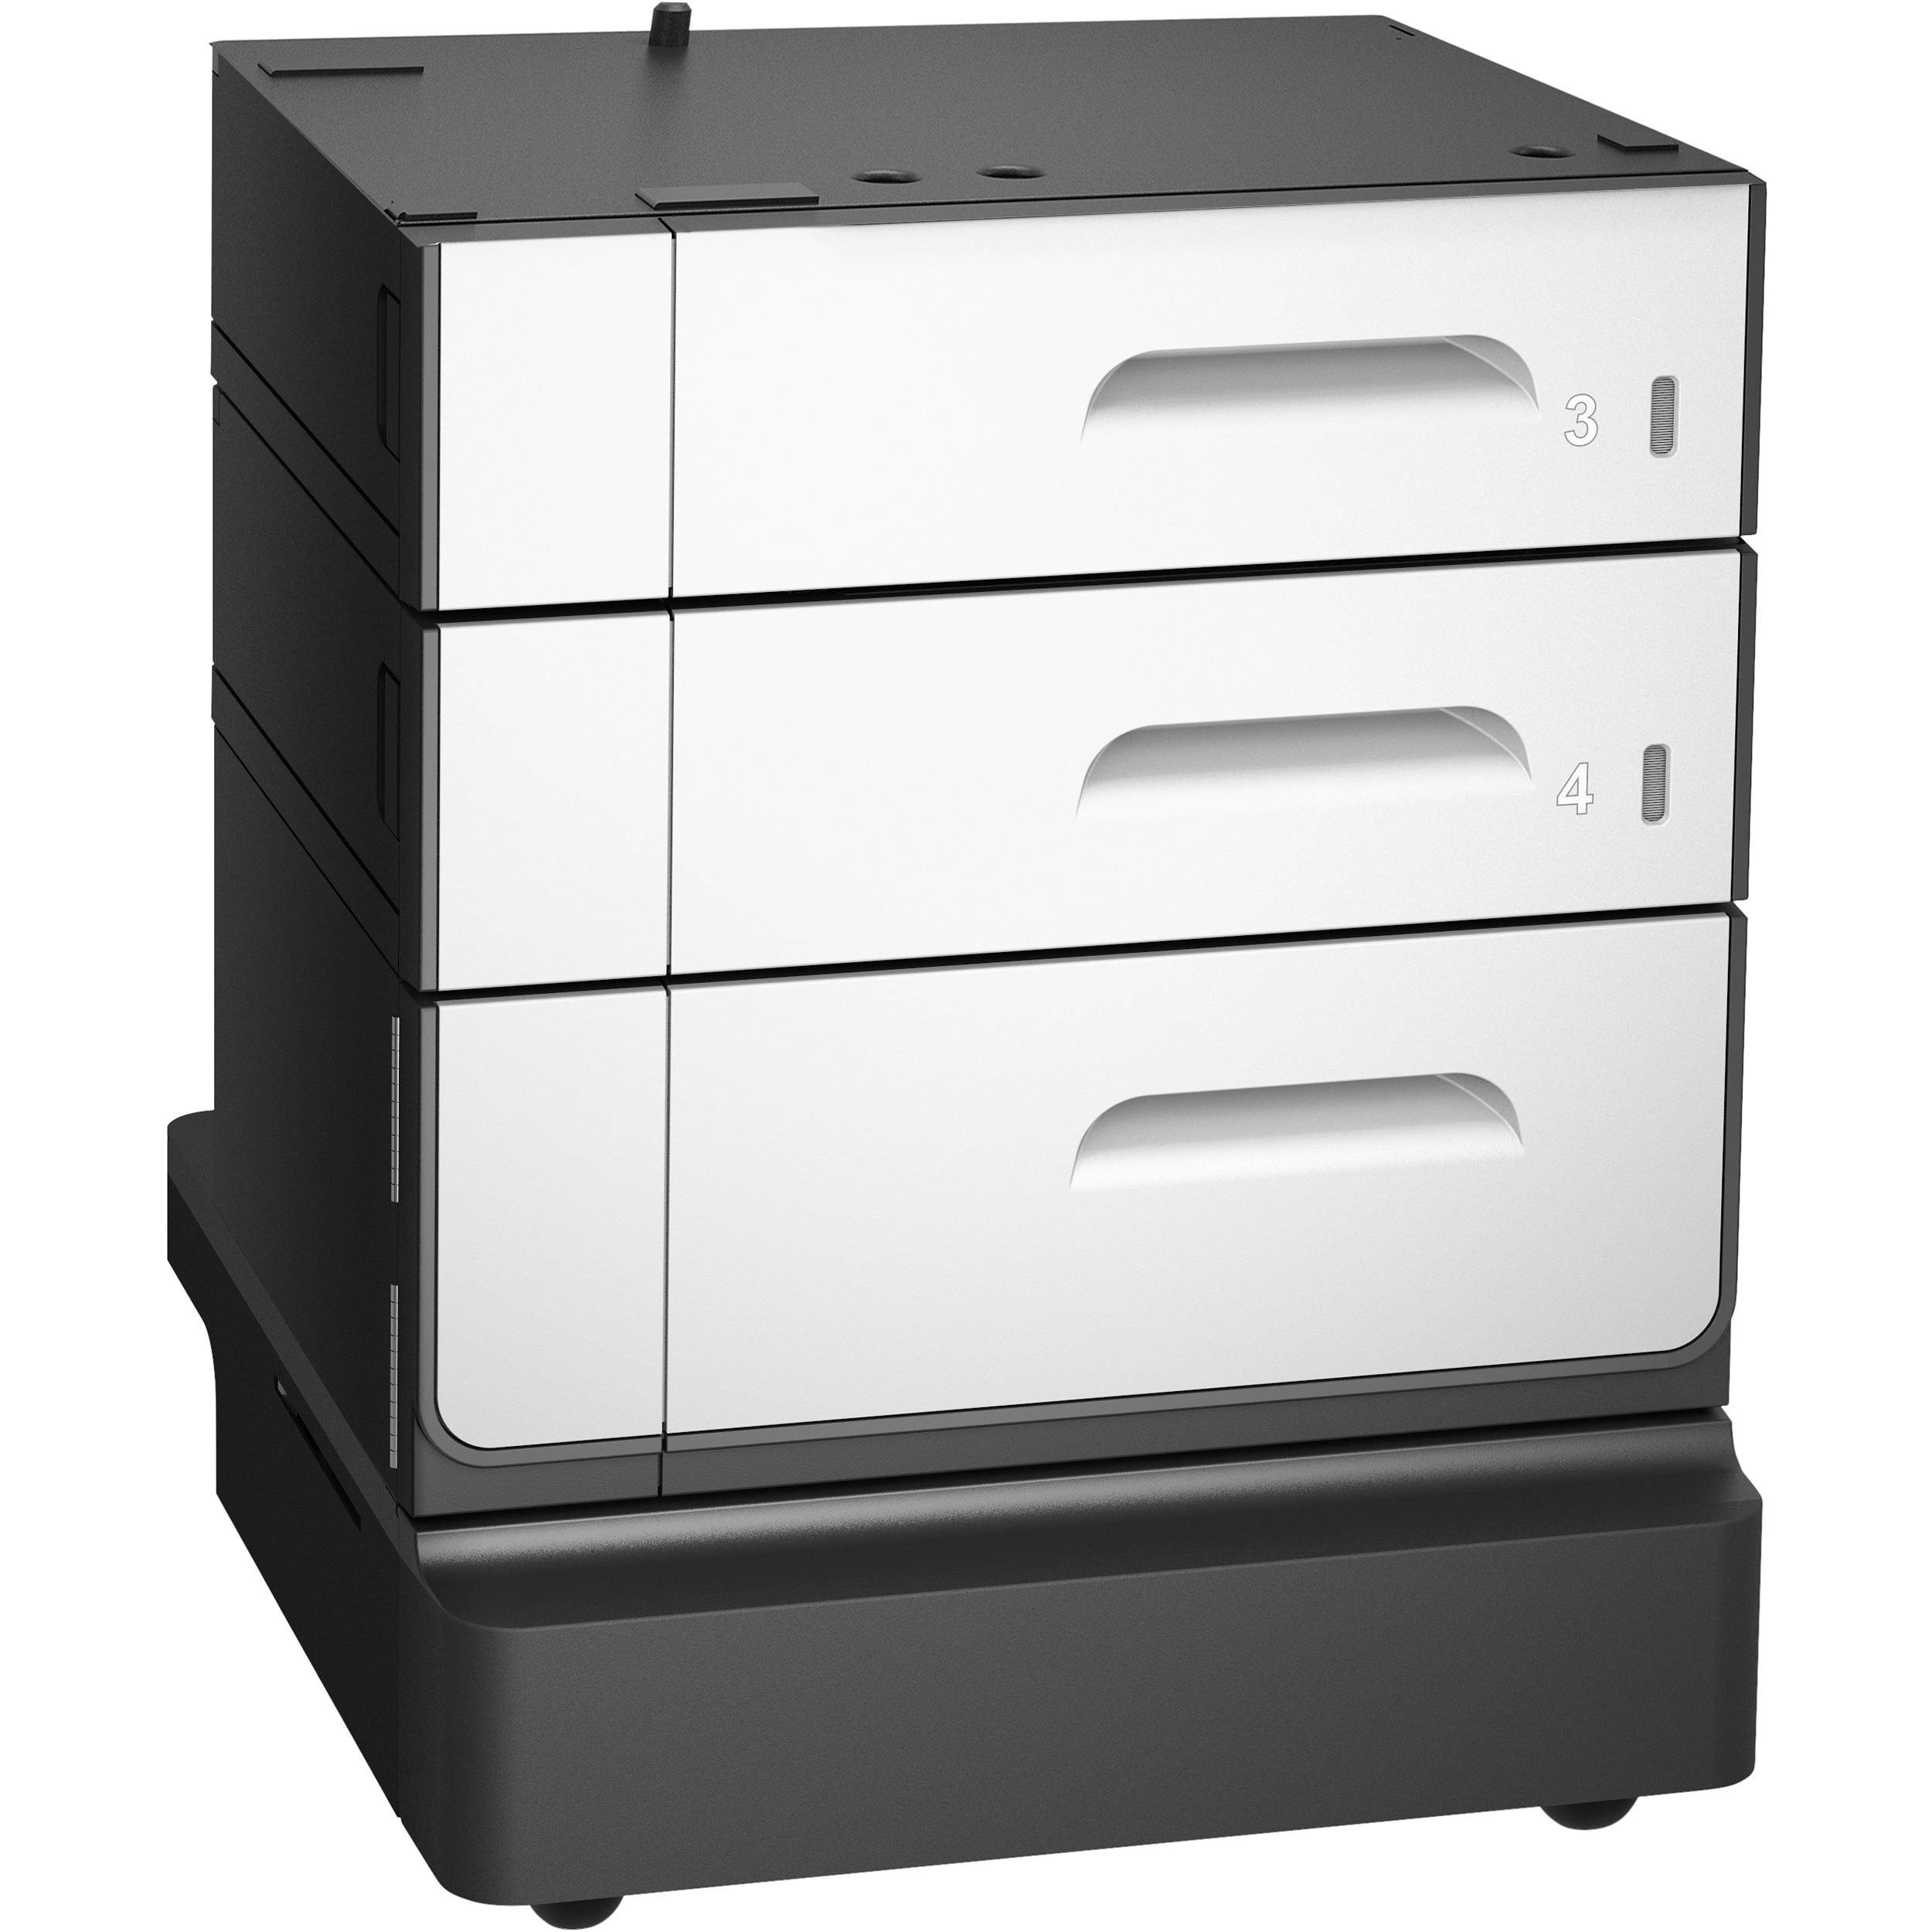 drawers nice photo look letter paper kvissle of x organizer drawer desk ikea tray